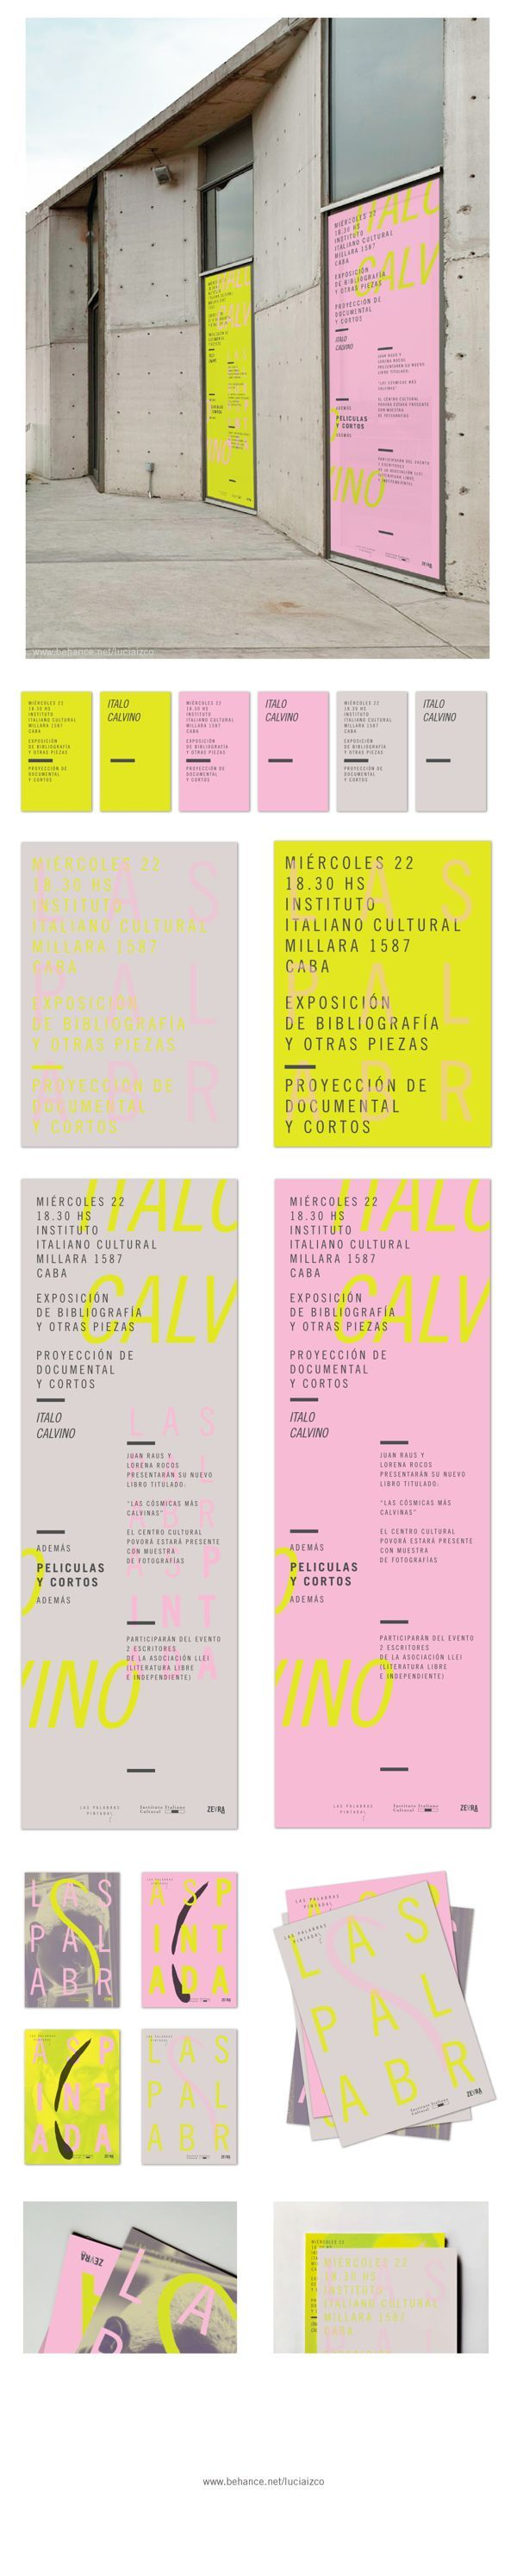 Las Palabras Pintadas by Lucia Izco - amazing #poster advertisements.